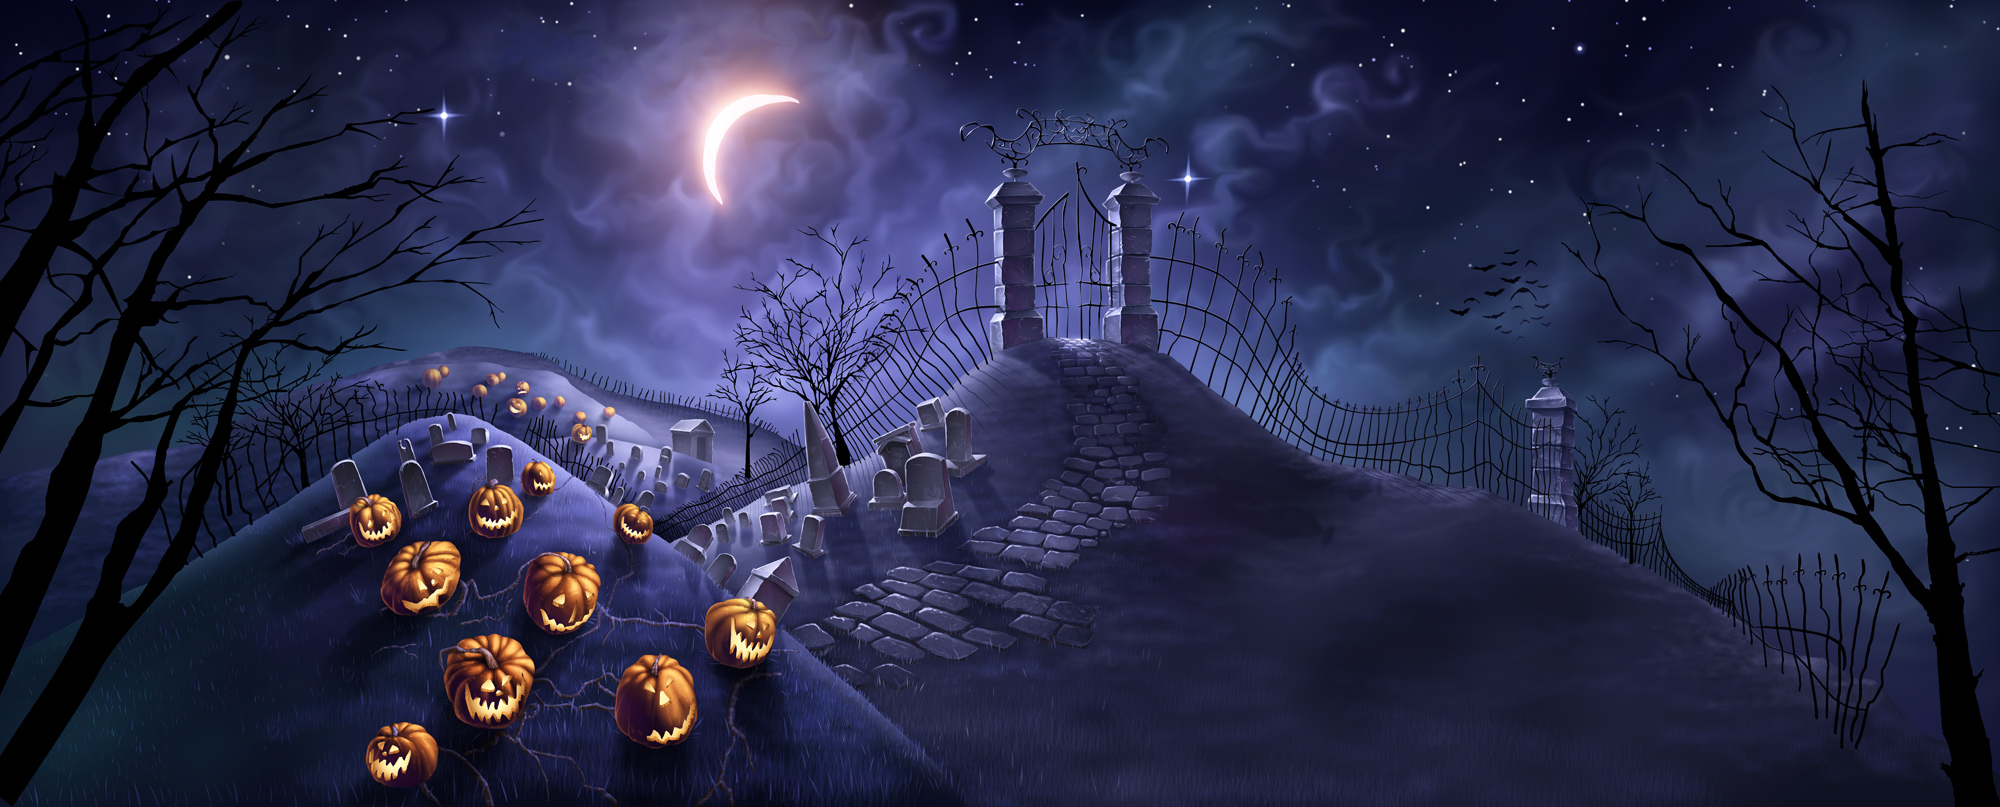 halloween background: desktop, cute, tumblr, scary and 2000x807